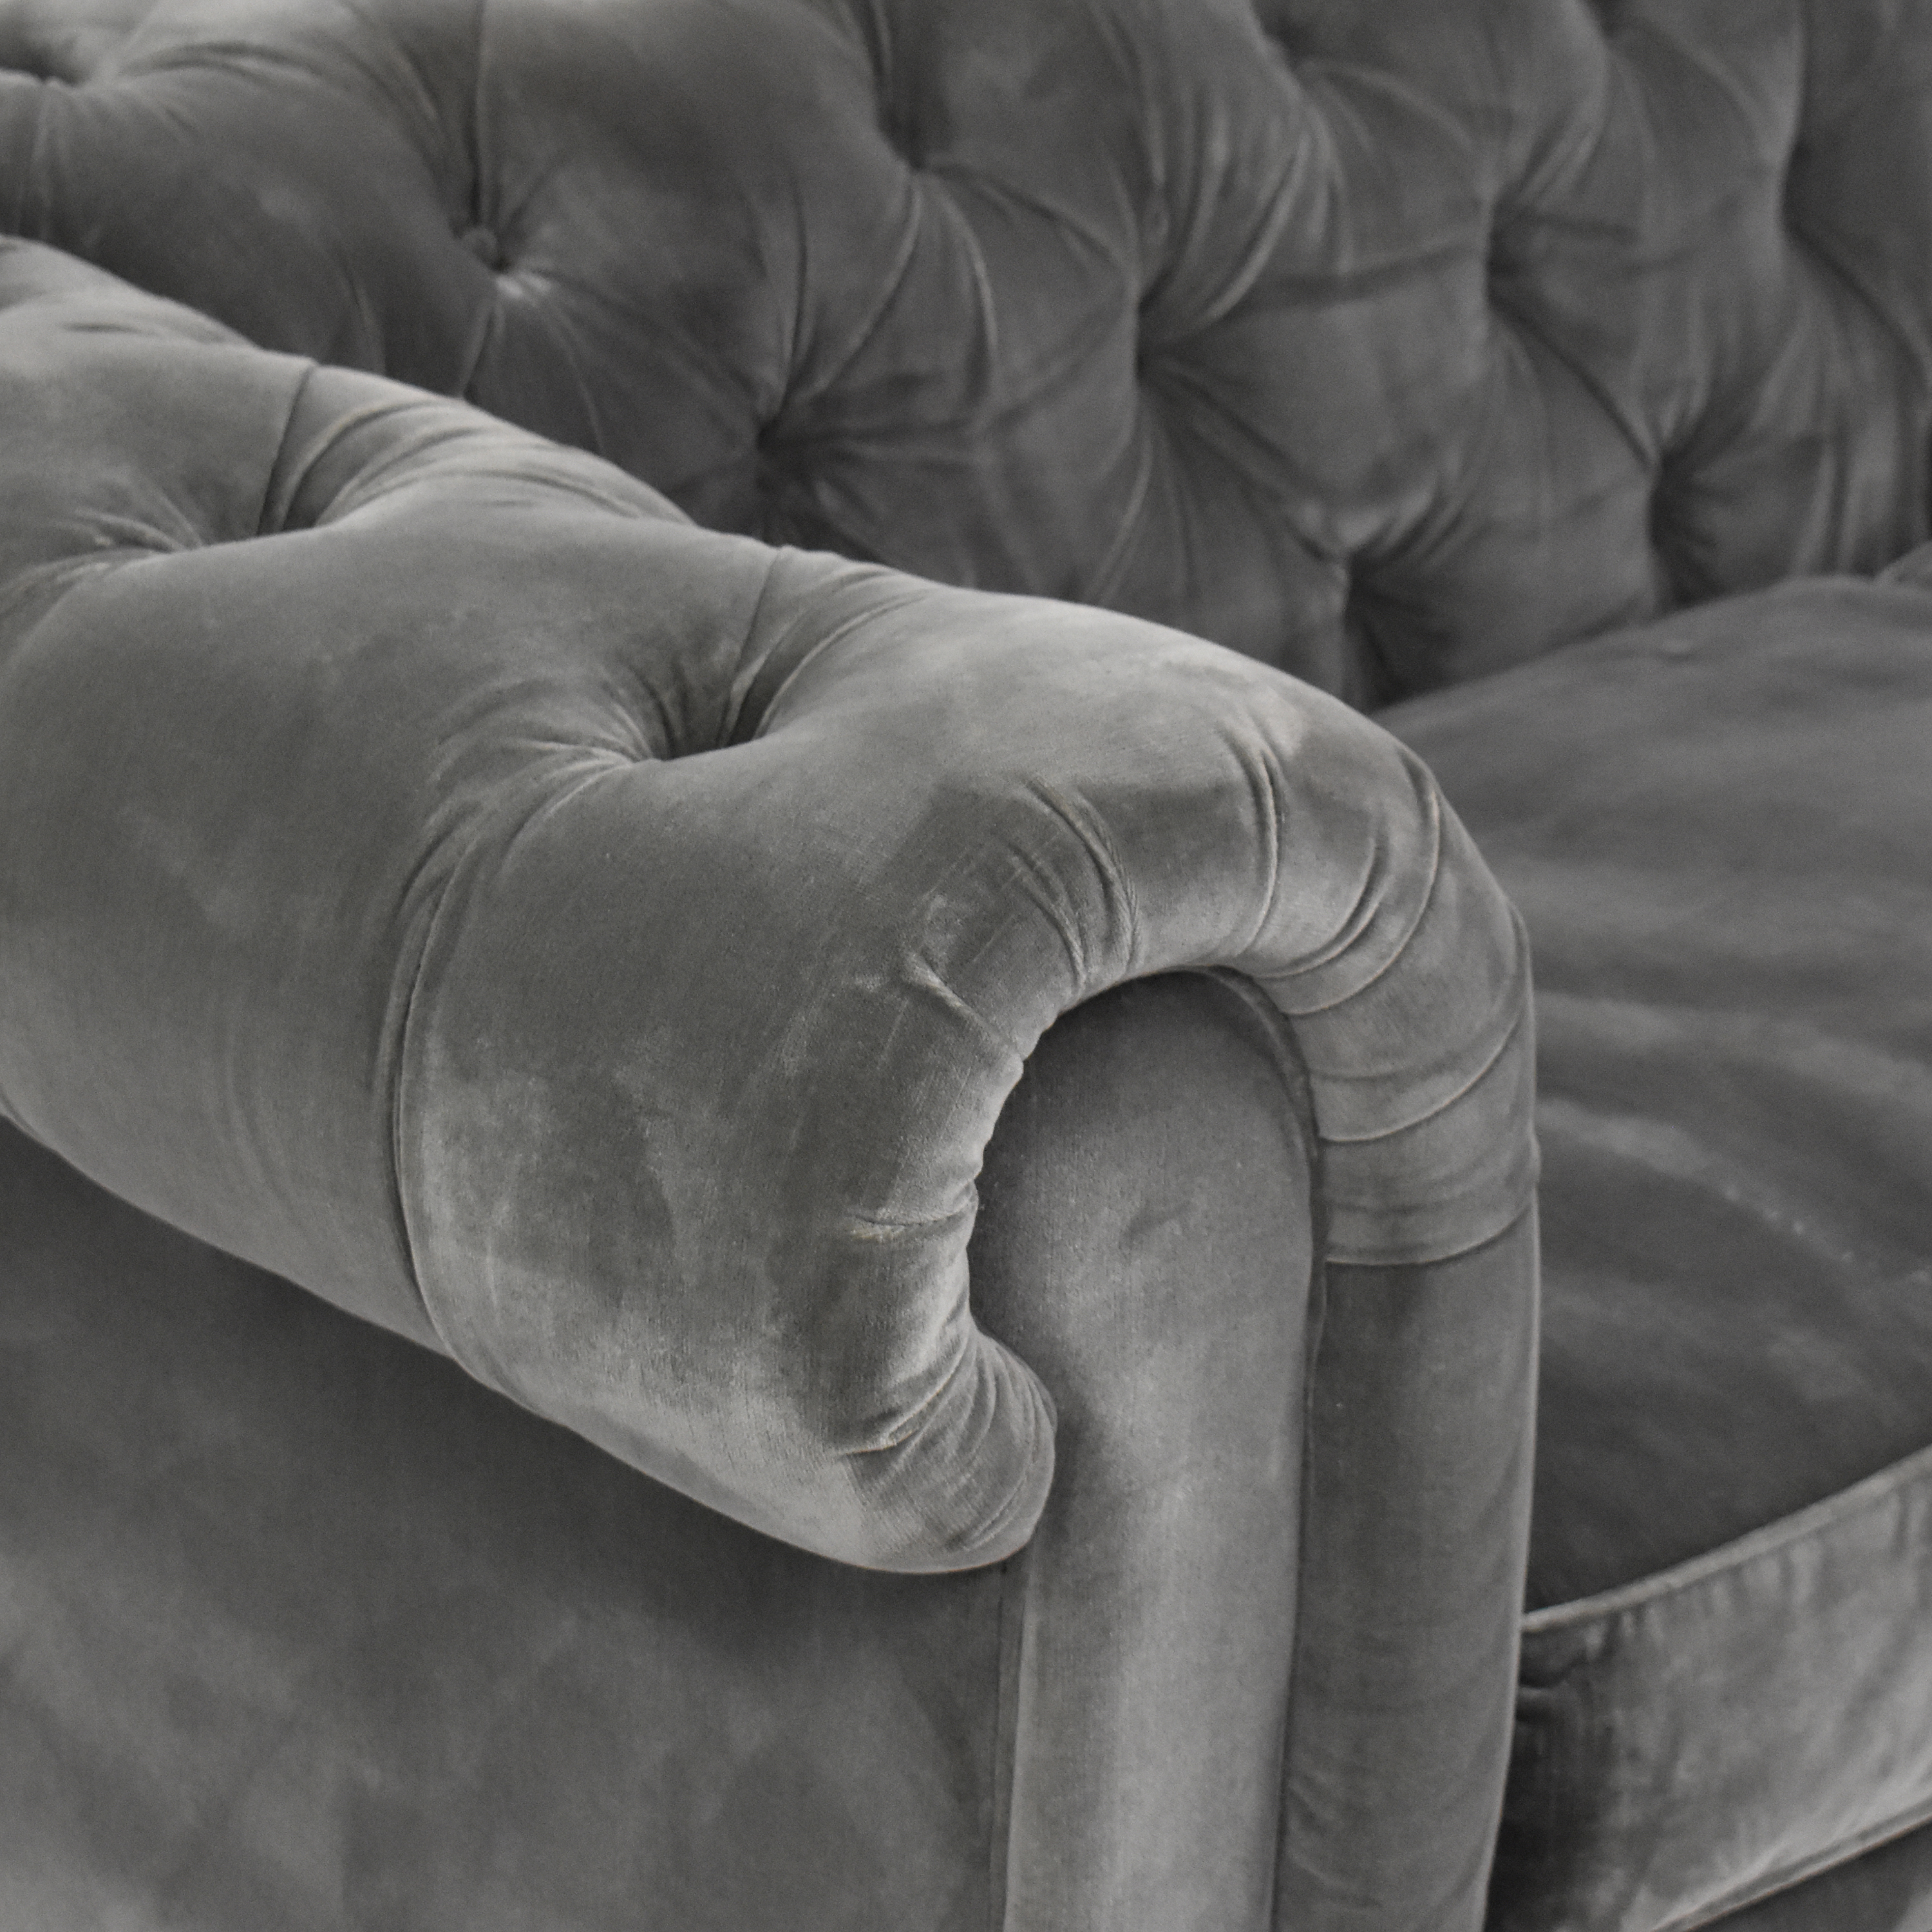 Restoration Hardware Restoration Hardware Kensington Chesterfield Sofa coupon